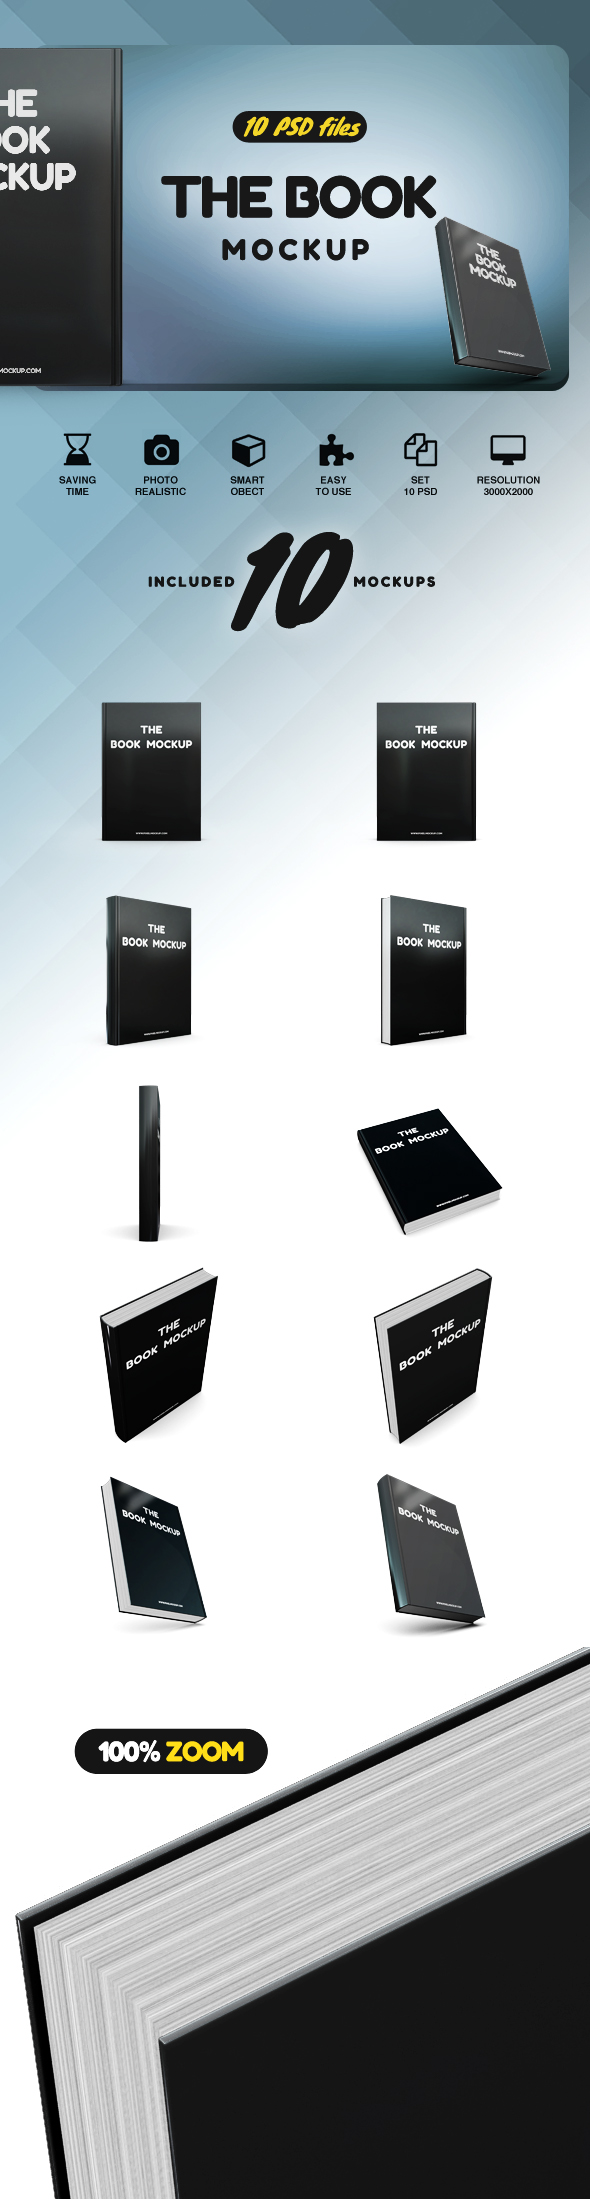 The Book Mockup example image 2